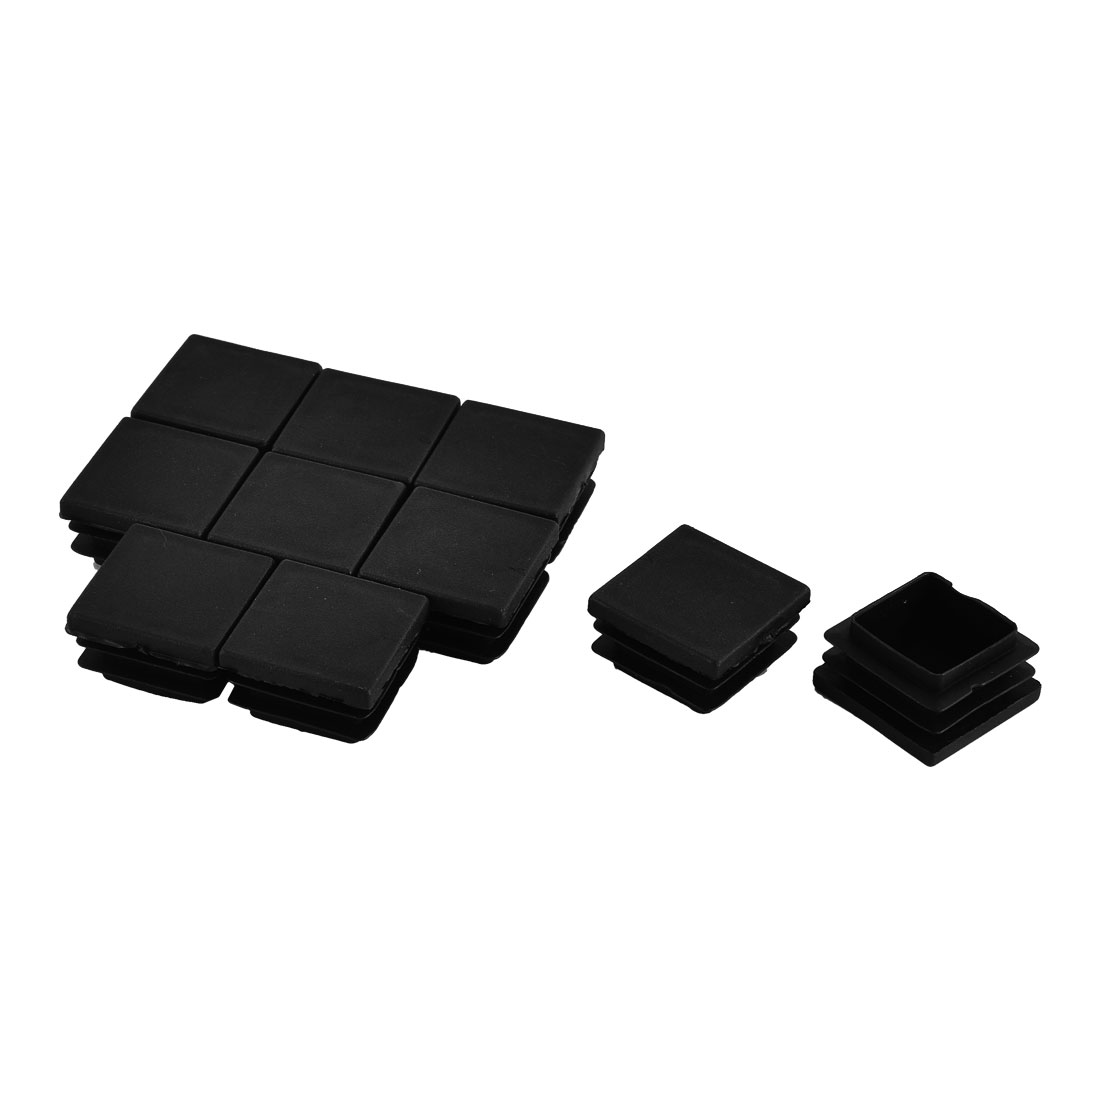 Furniture Table Chair Legs Plastic Square Tube Pipe Insert Cap Cover Black 32 x 32mm 10pcs